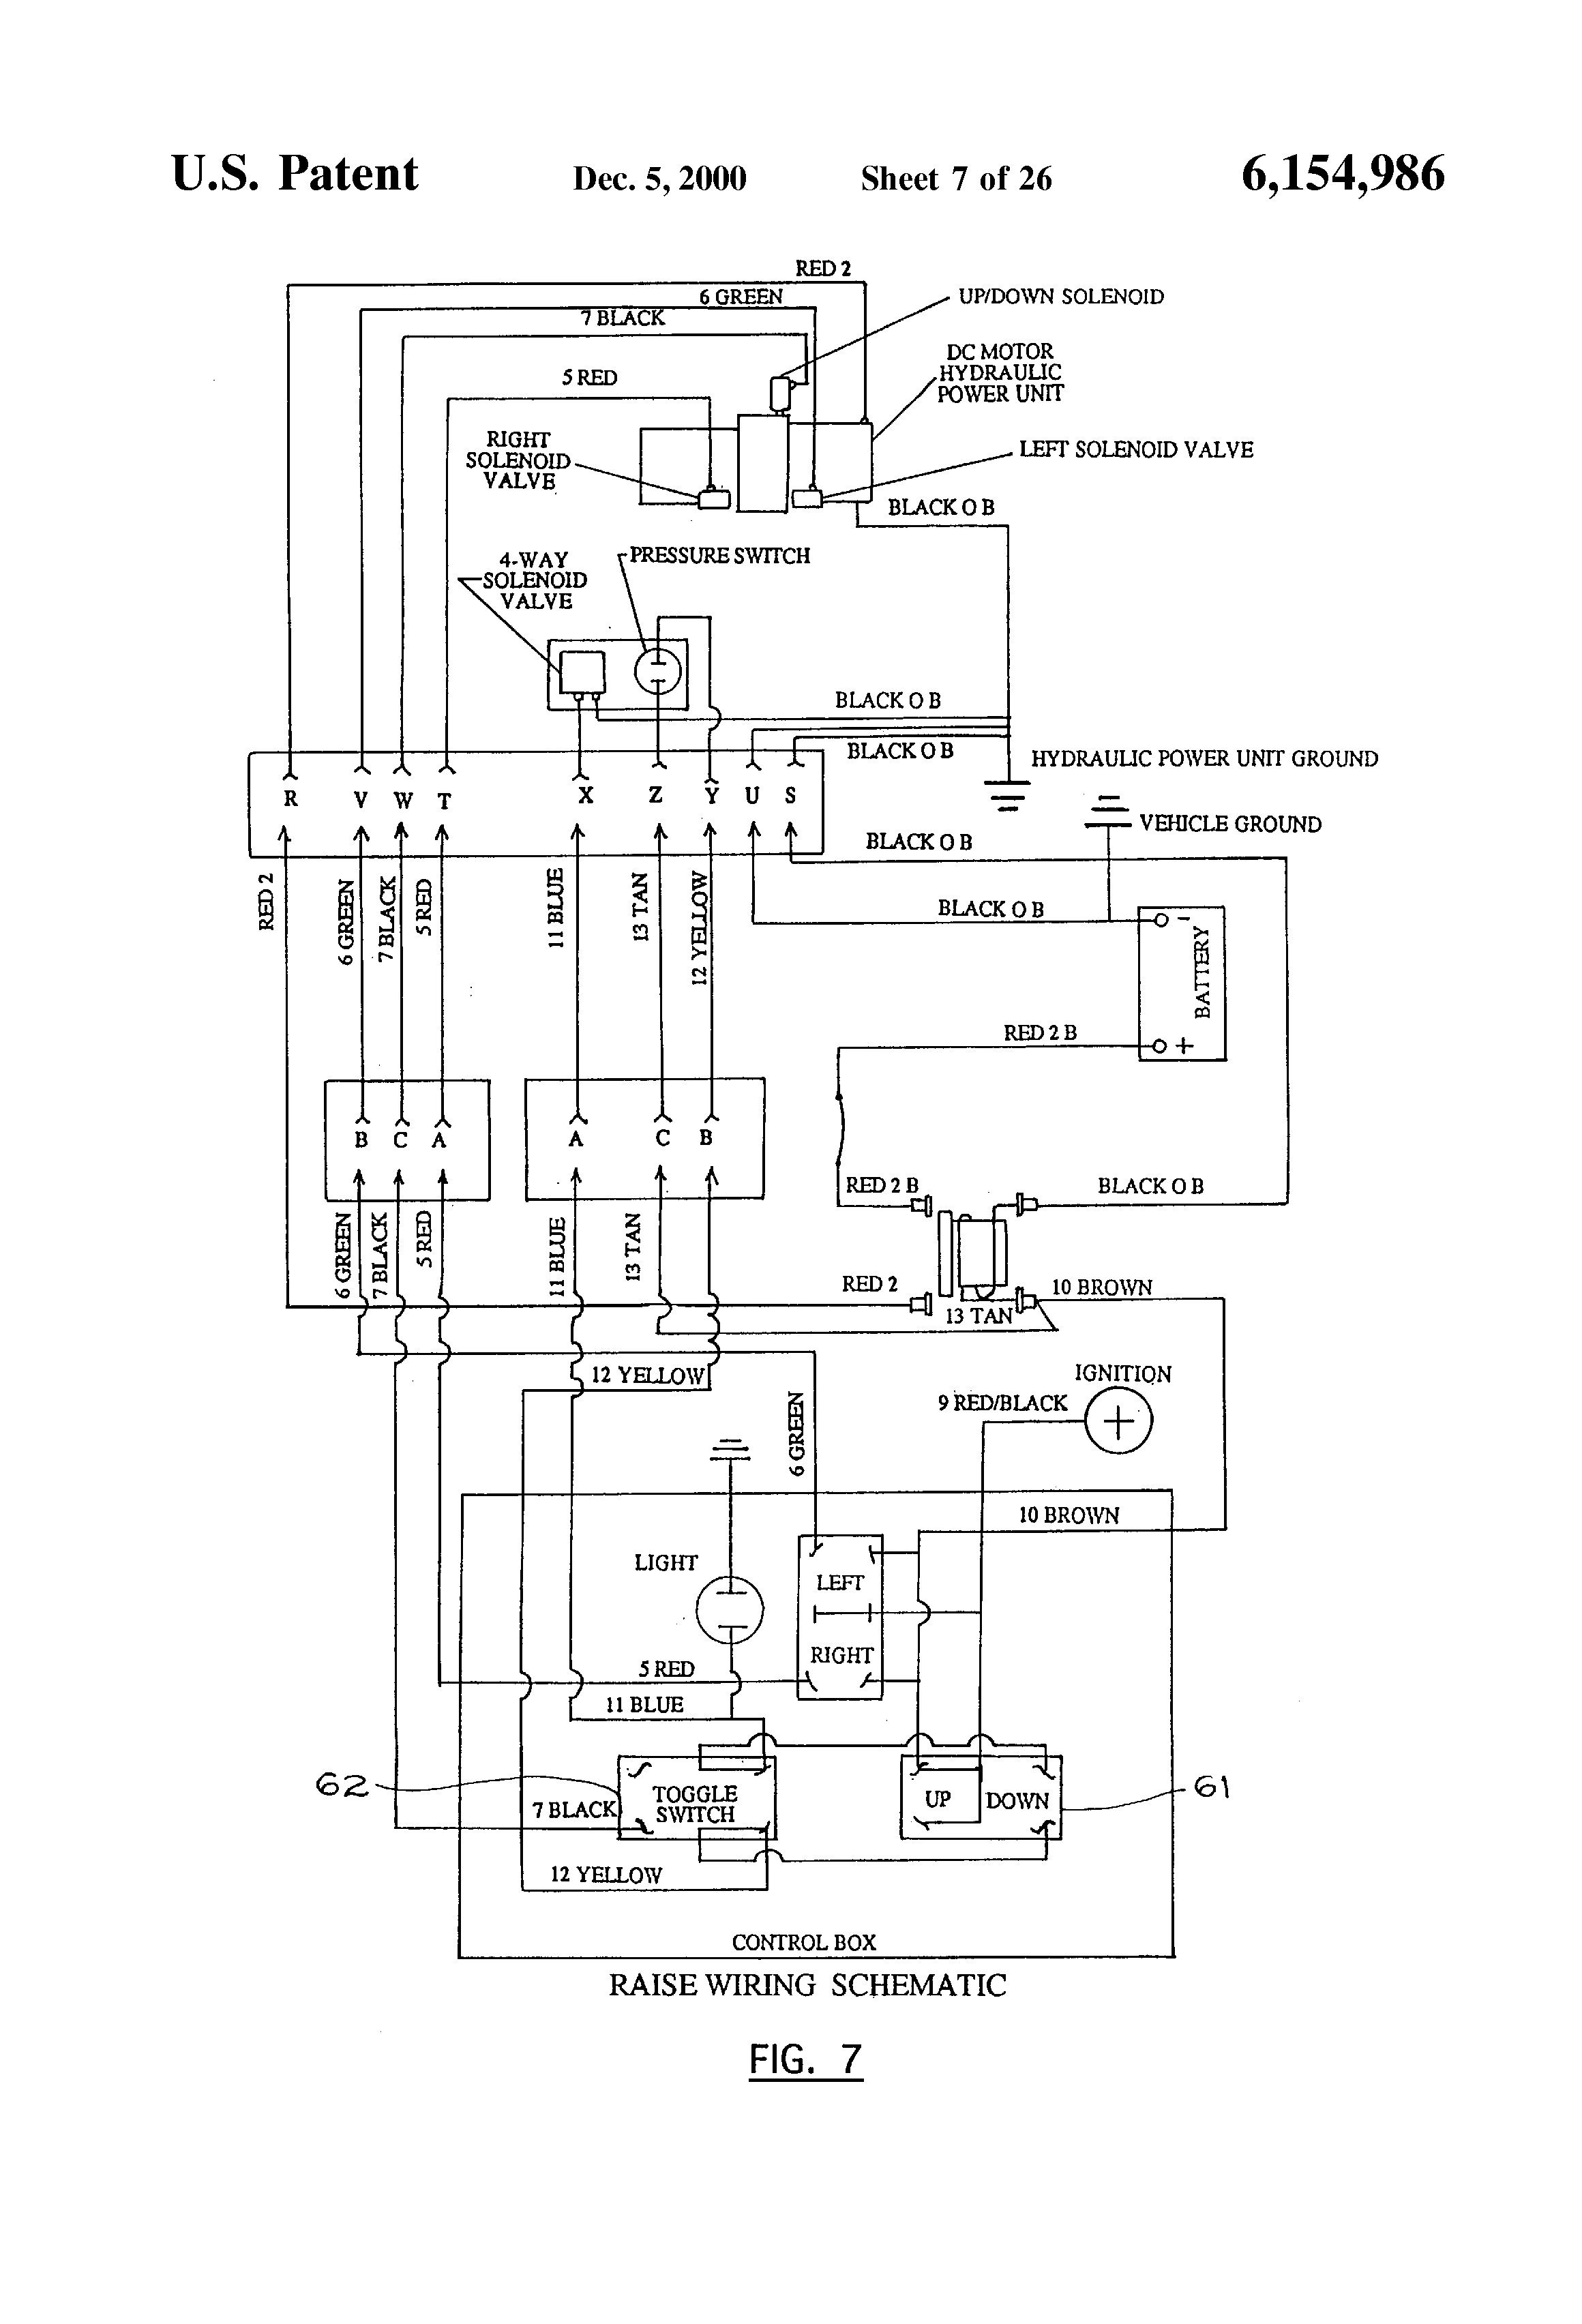 Western Plow Controller Wiring Diagram Curtis Snow Together With Luxury Nice Chevy Of Related Post